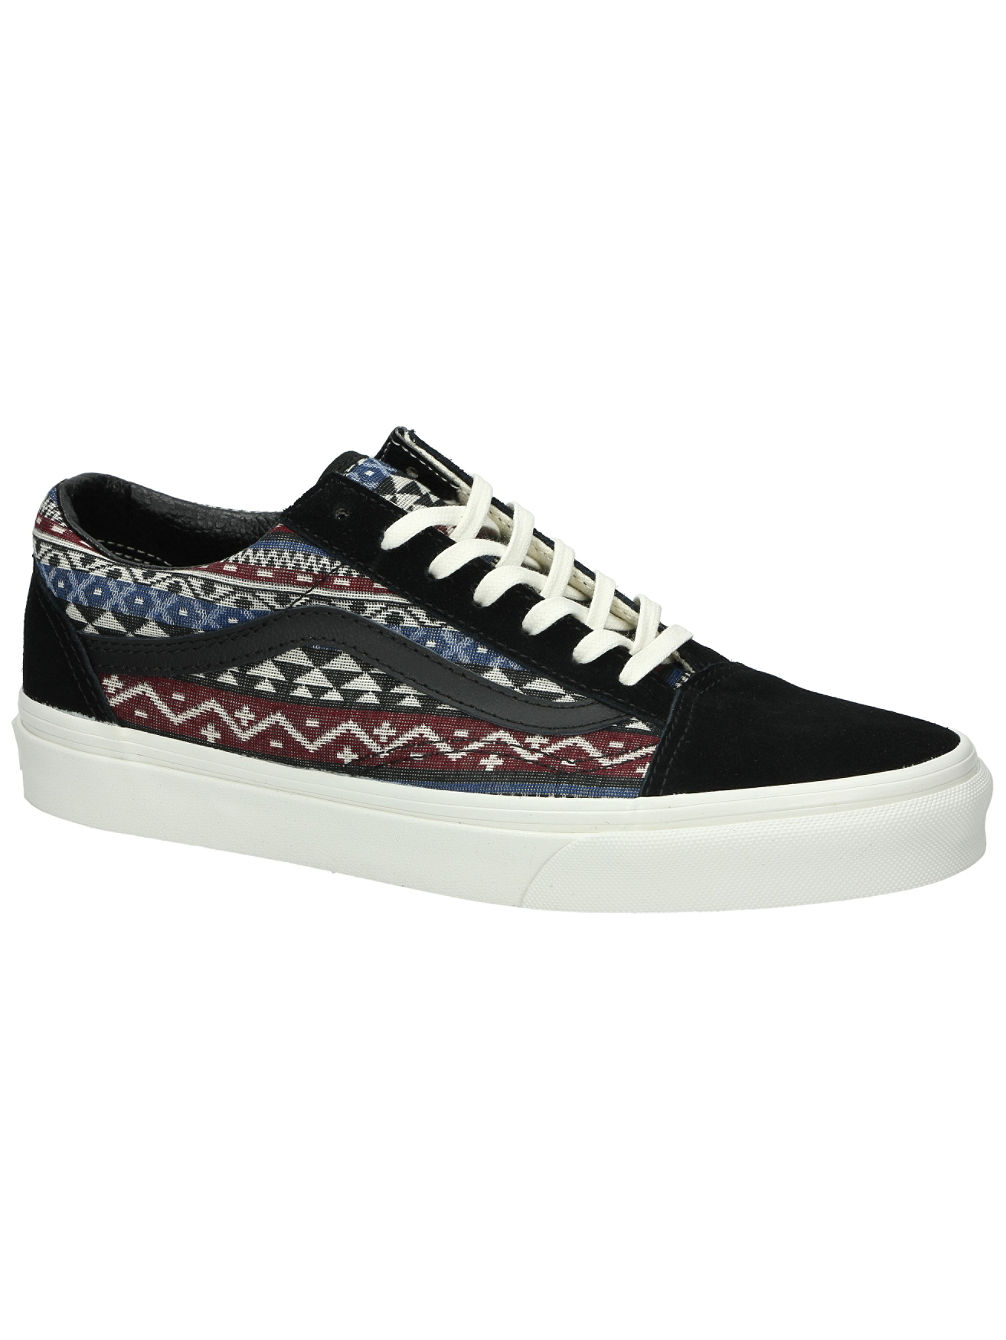 buy vans old skool sneakers online at blue. Black Bedroom Furniture Sets. Home Design Ideas